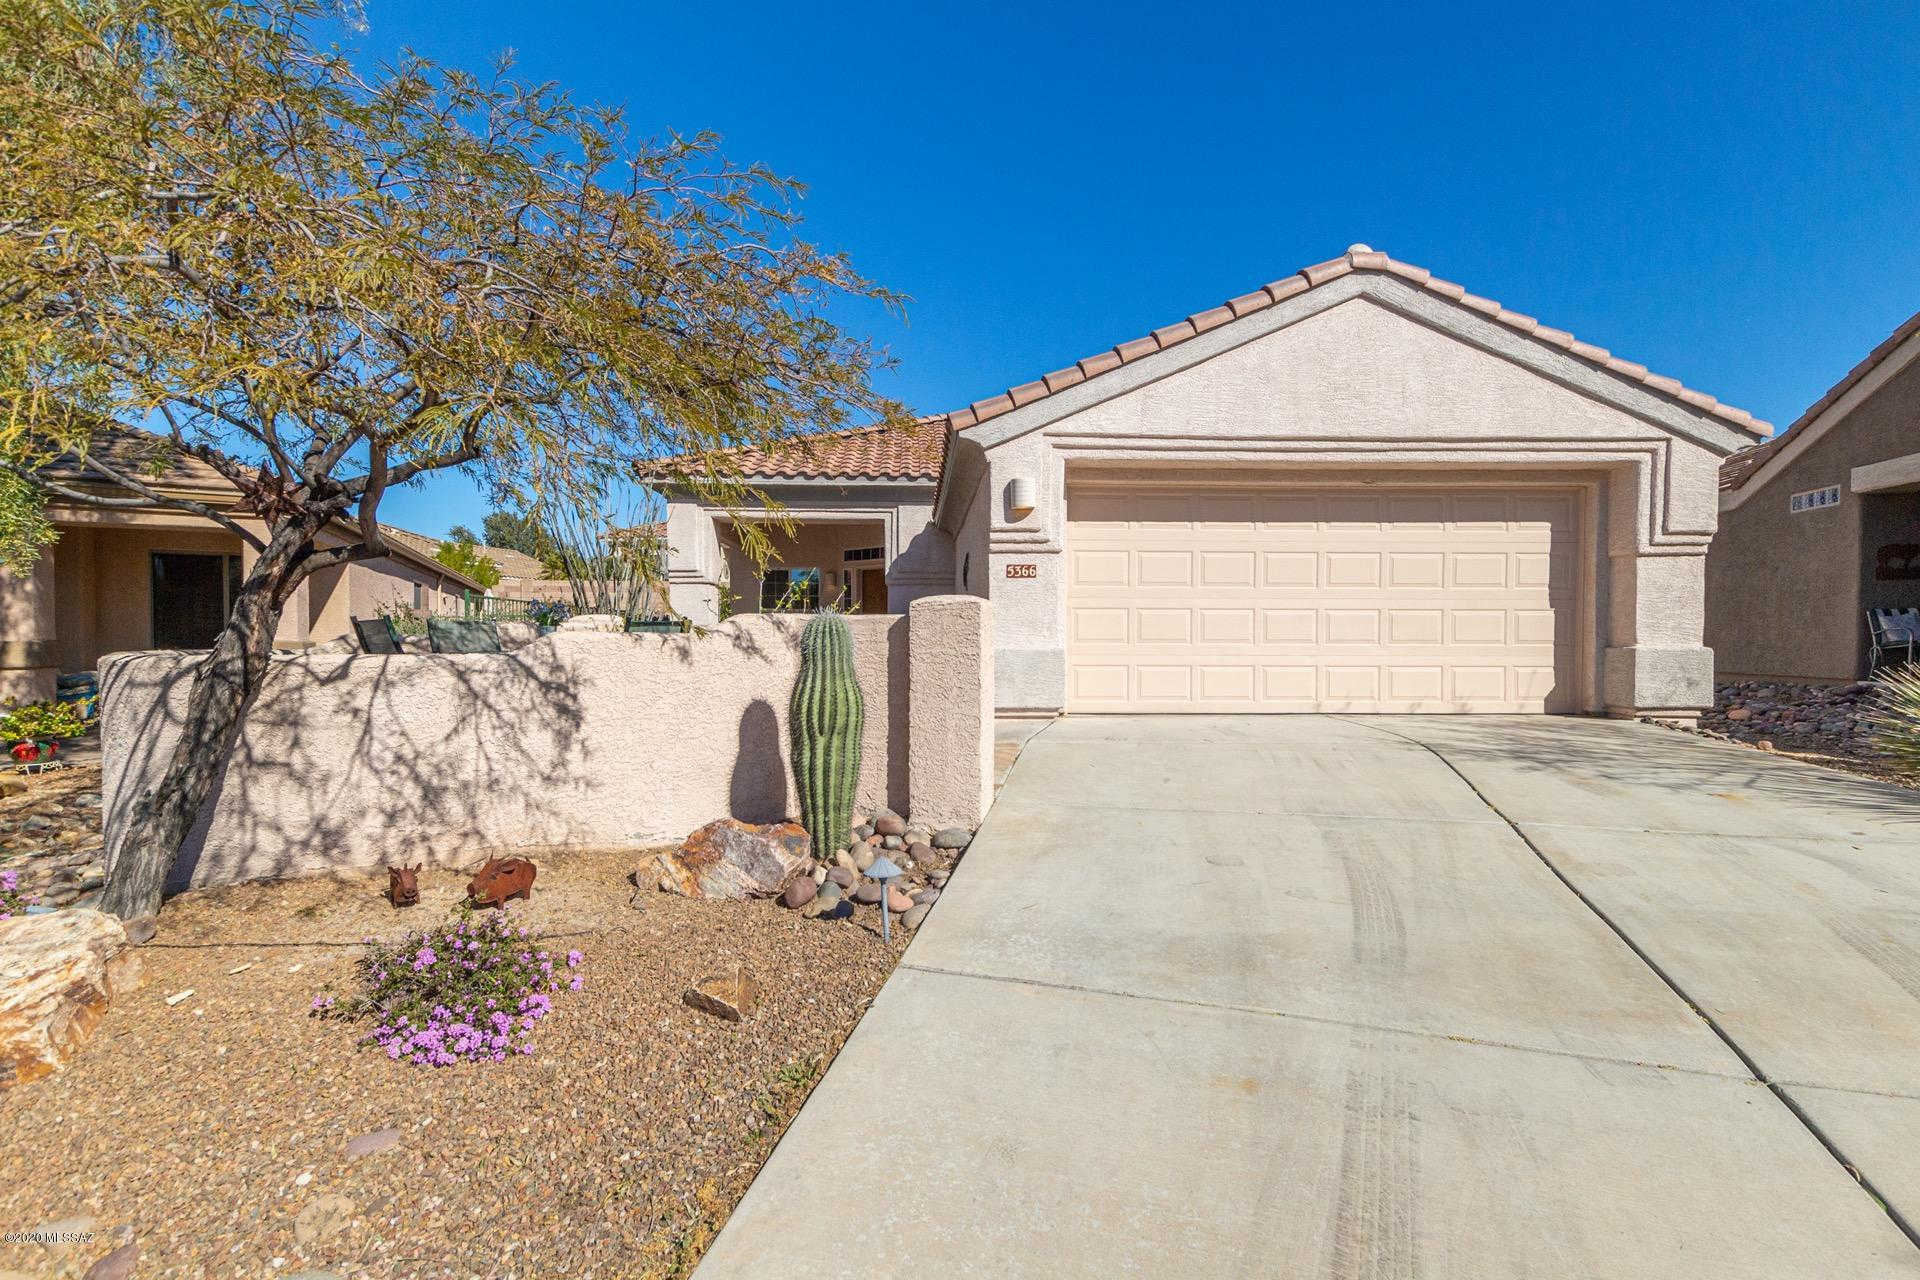 5366 W Eagle Claws Court, Marana, AZ 85658 has an Open House on  Saturday, February 8, 2020 11:00 AM to 1:00 PM